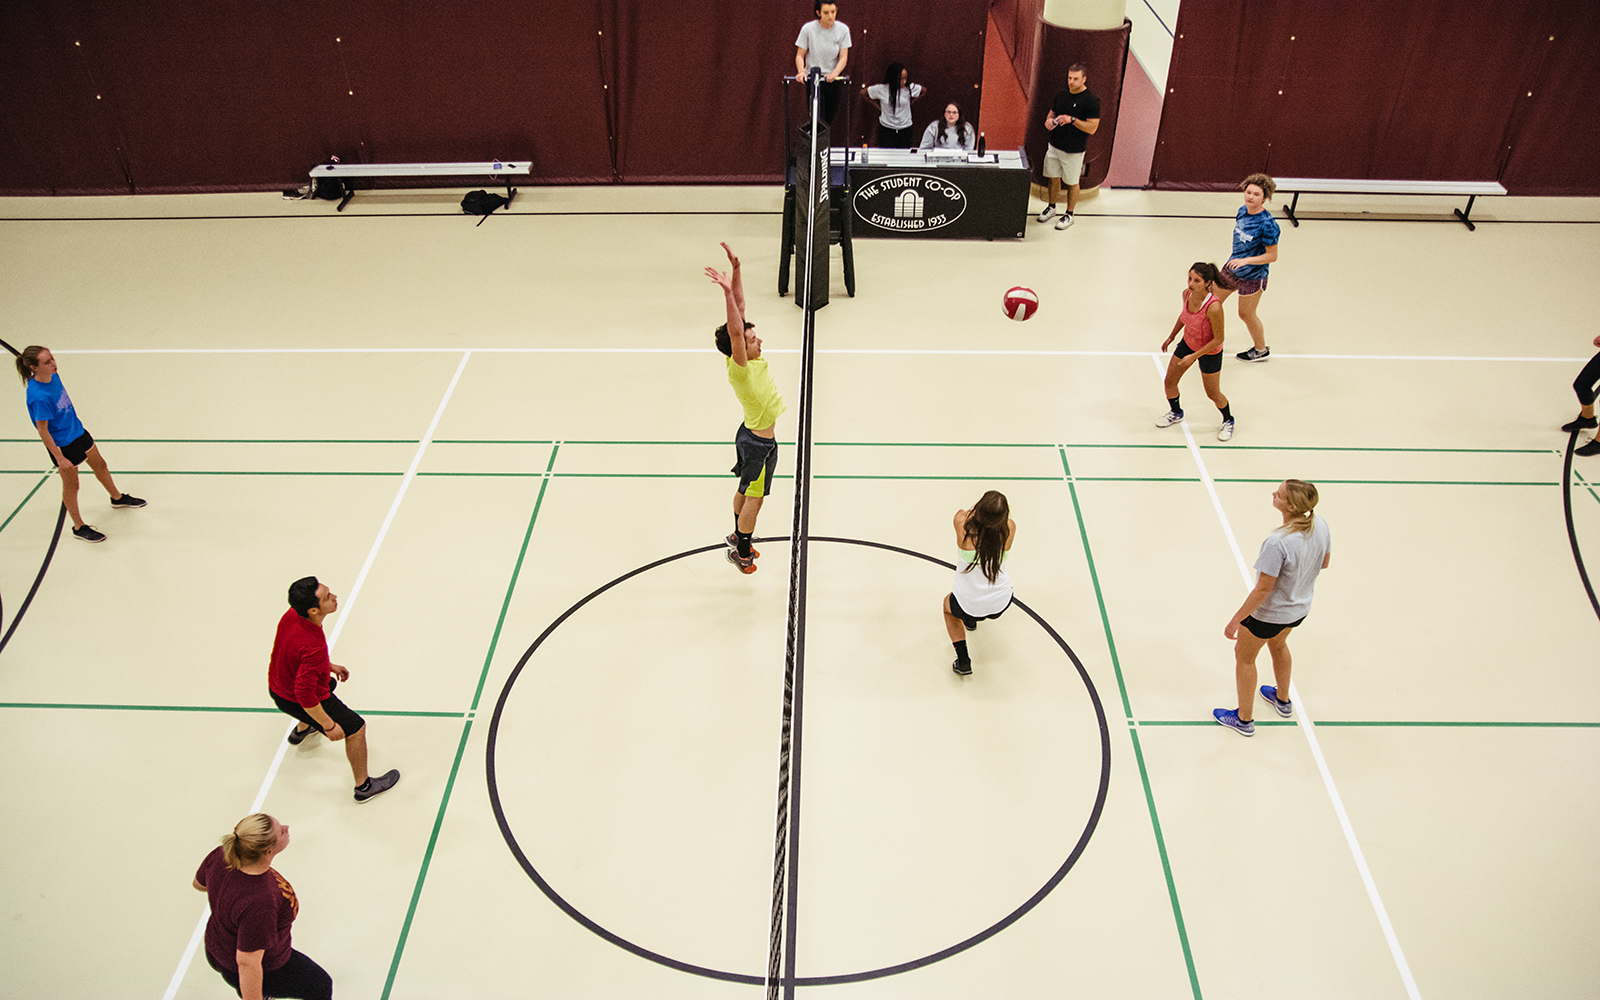 CoRec Volleyball